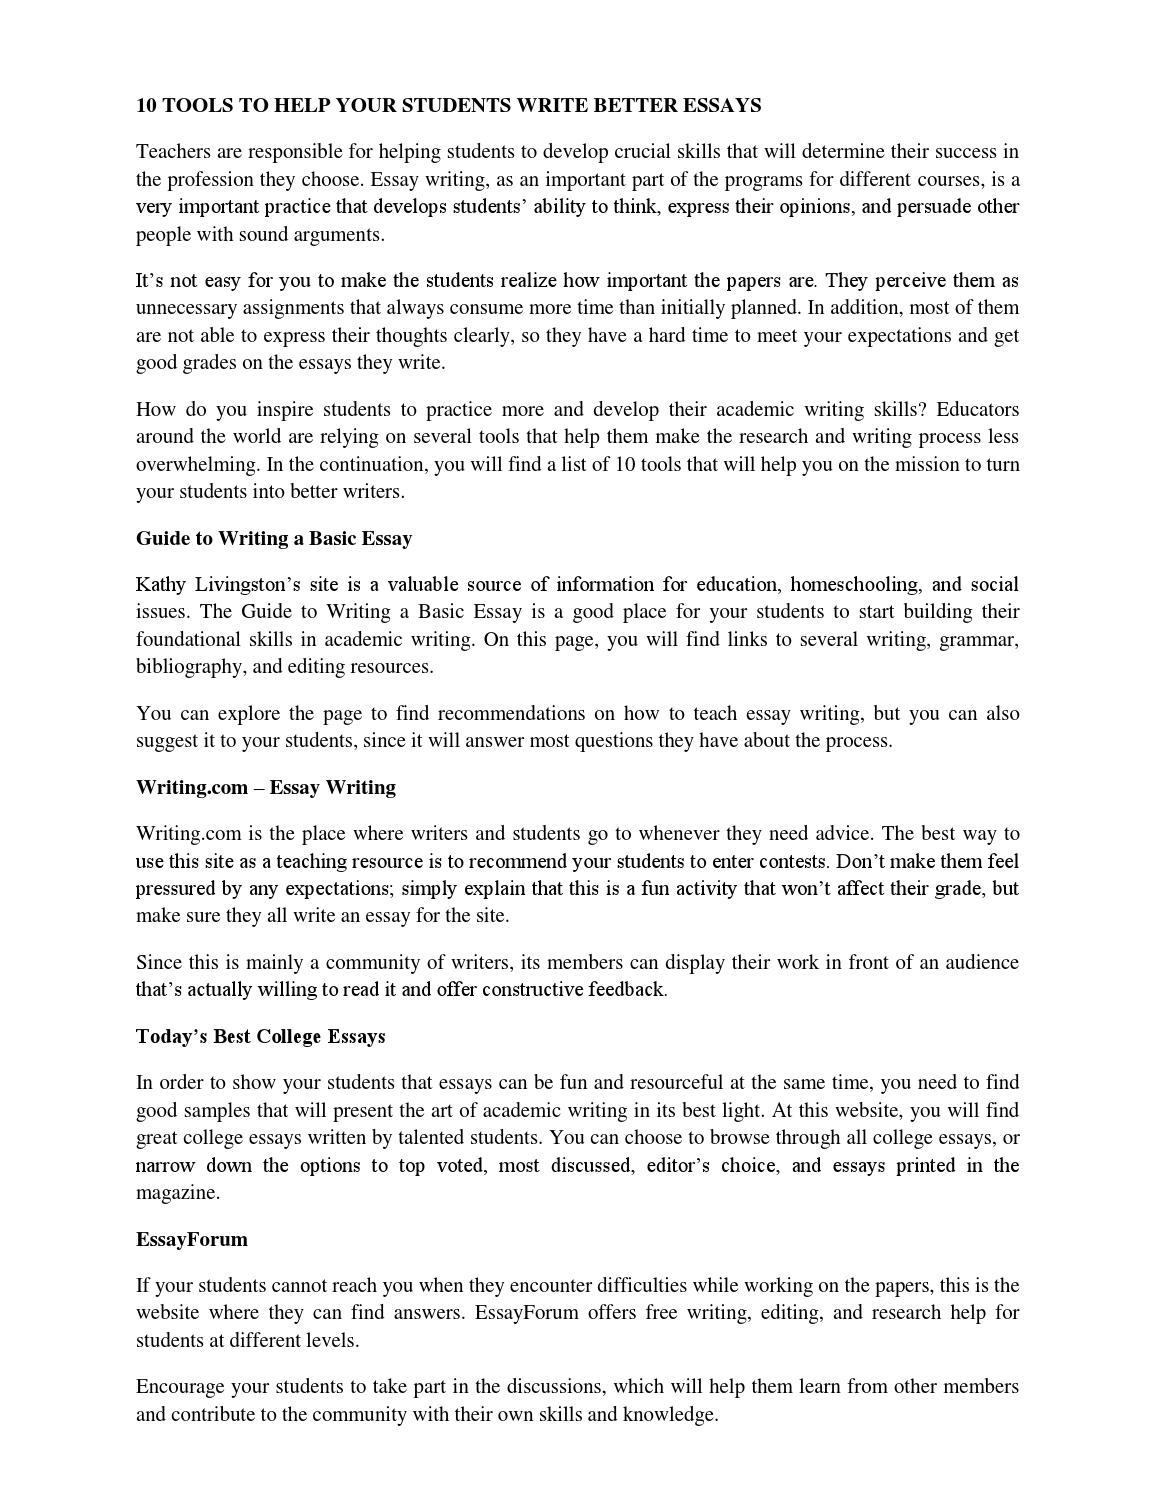 008 Free Online Research Paper Publication Essay Writing Websites Reviews For Students Editing Page Example Astounding Full